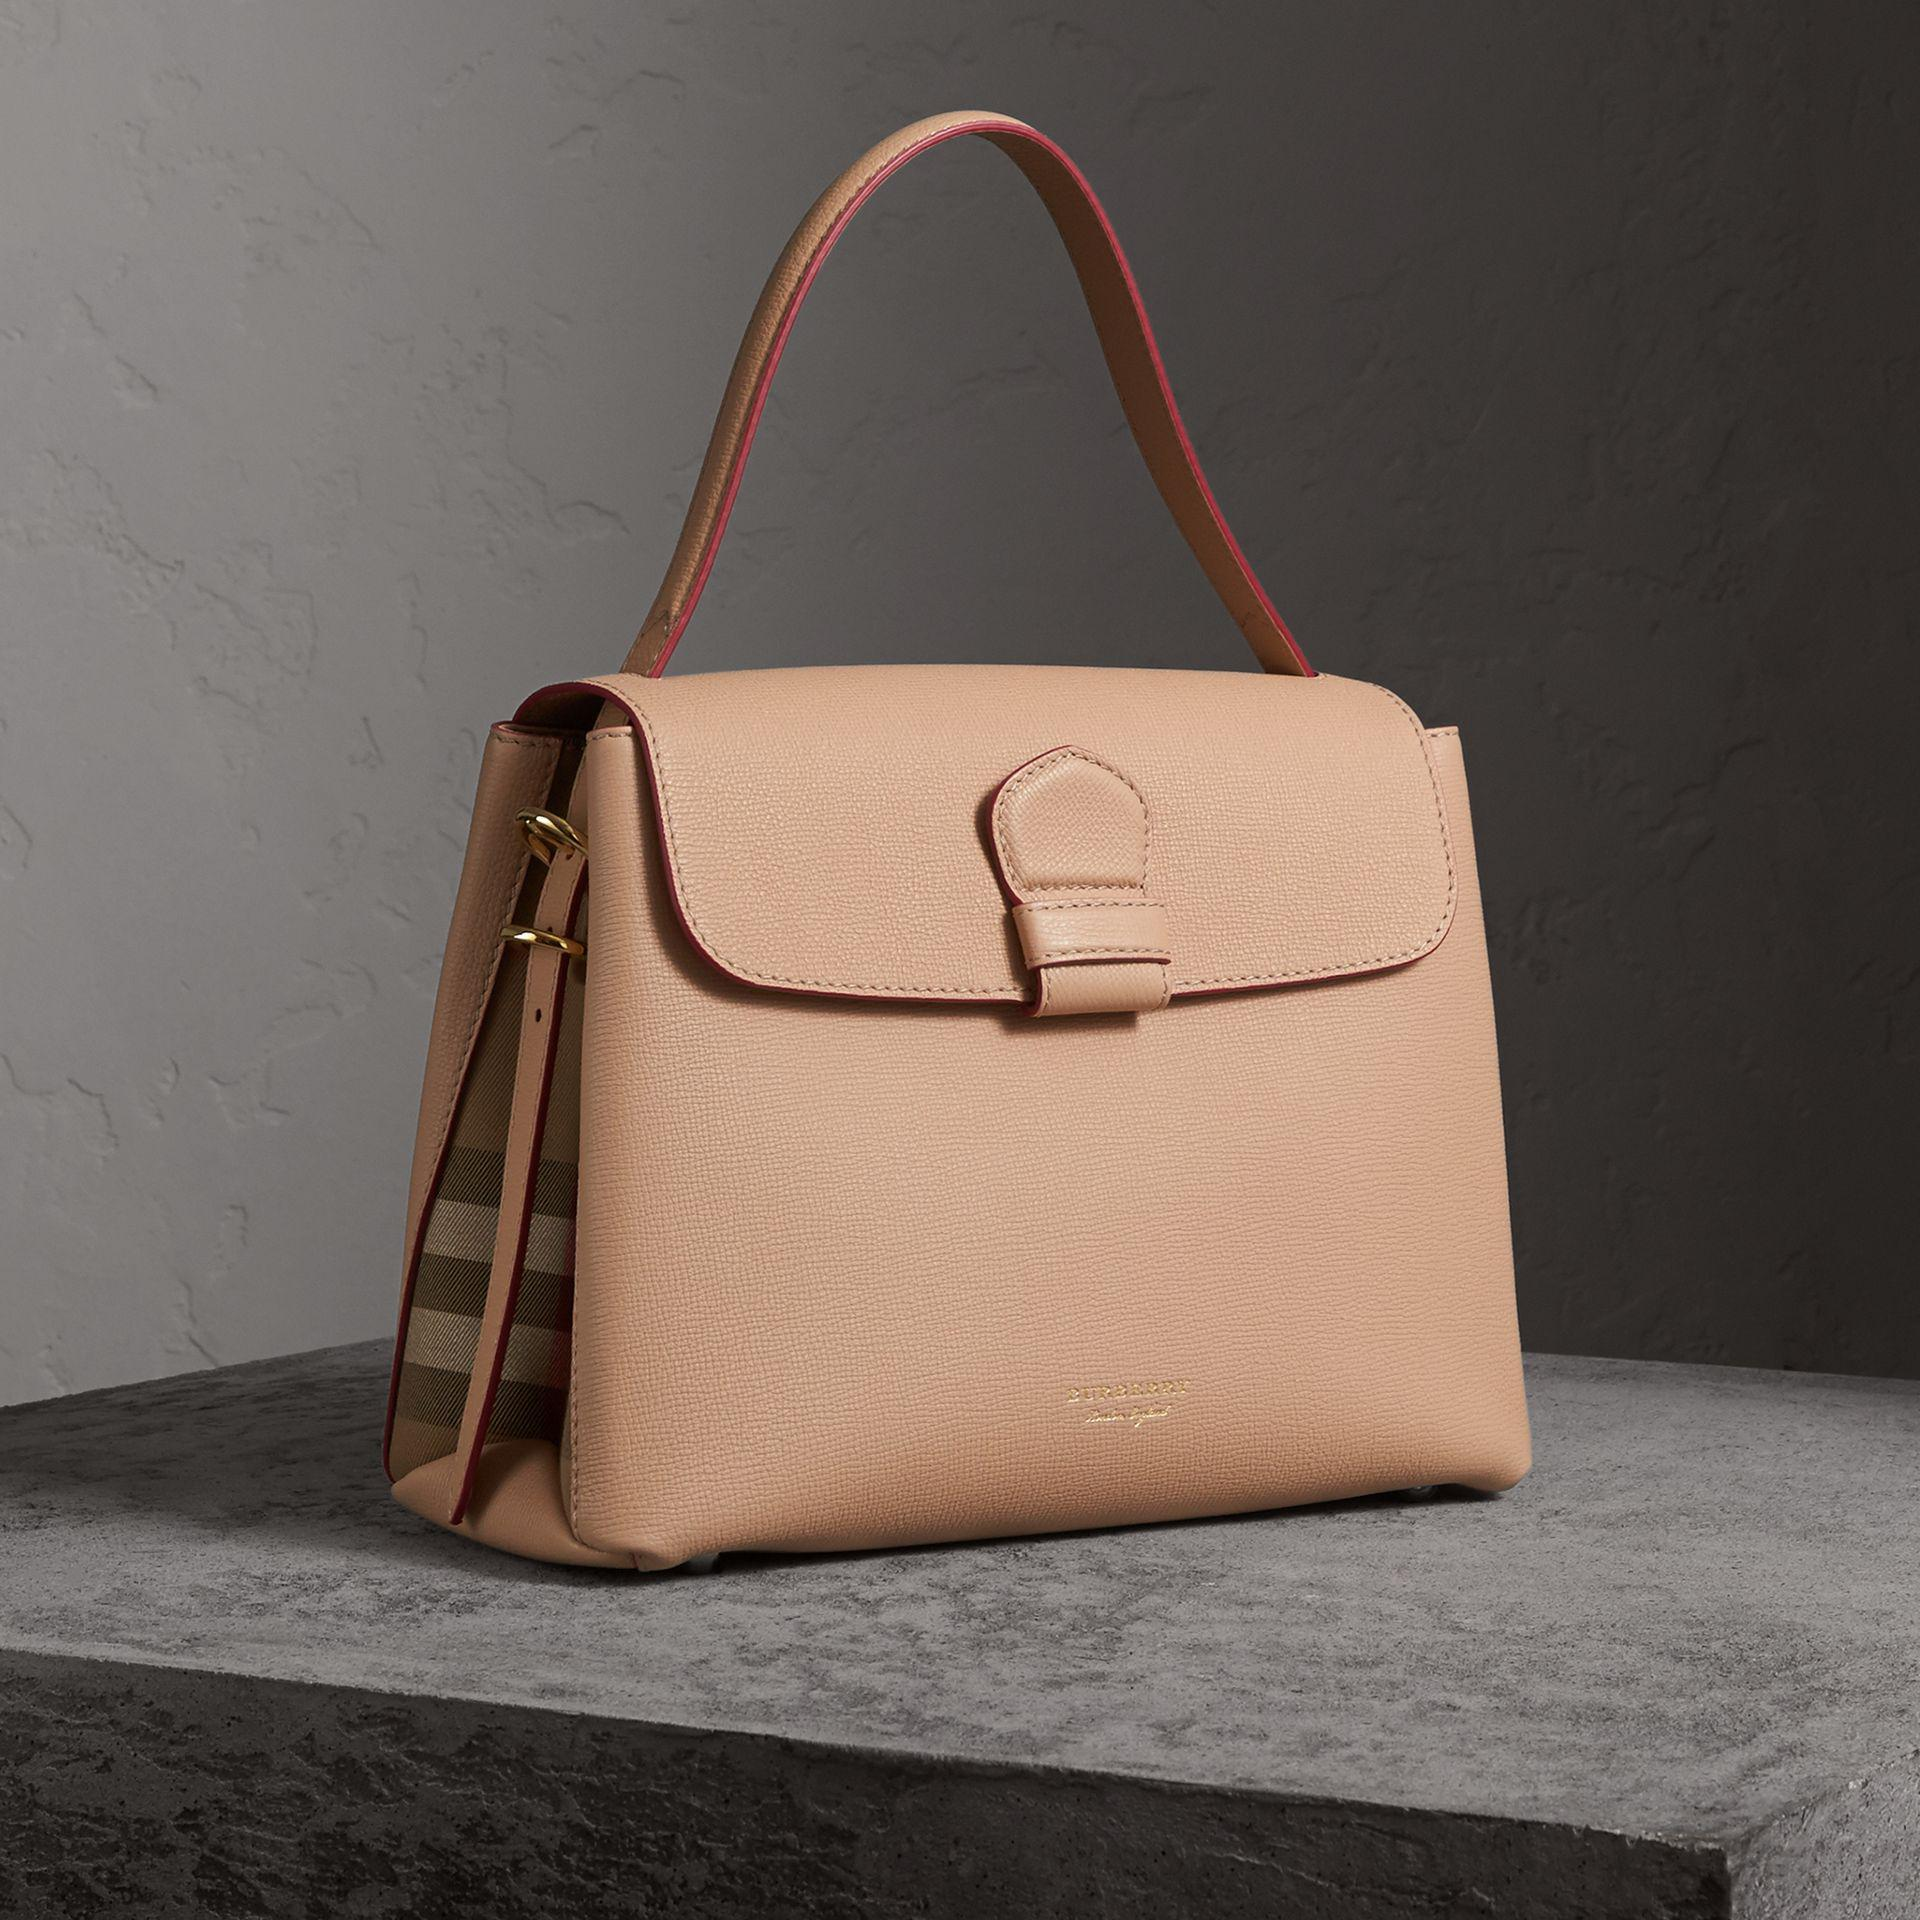 64b887ec1 Burberry Medium Grainy Leather And House Check Tote Bag - Women | - Lyst